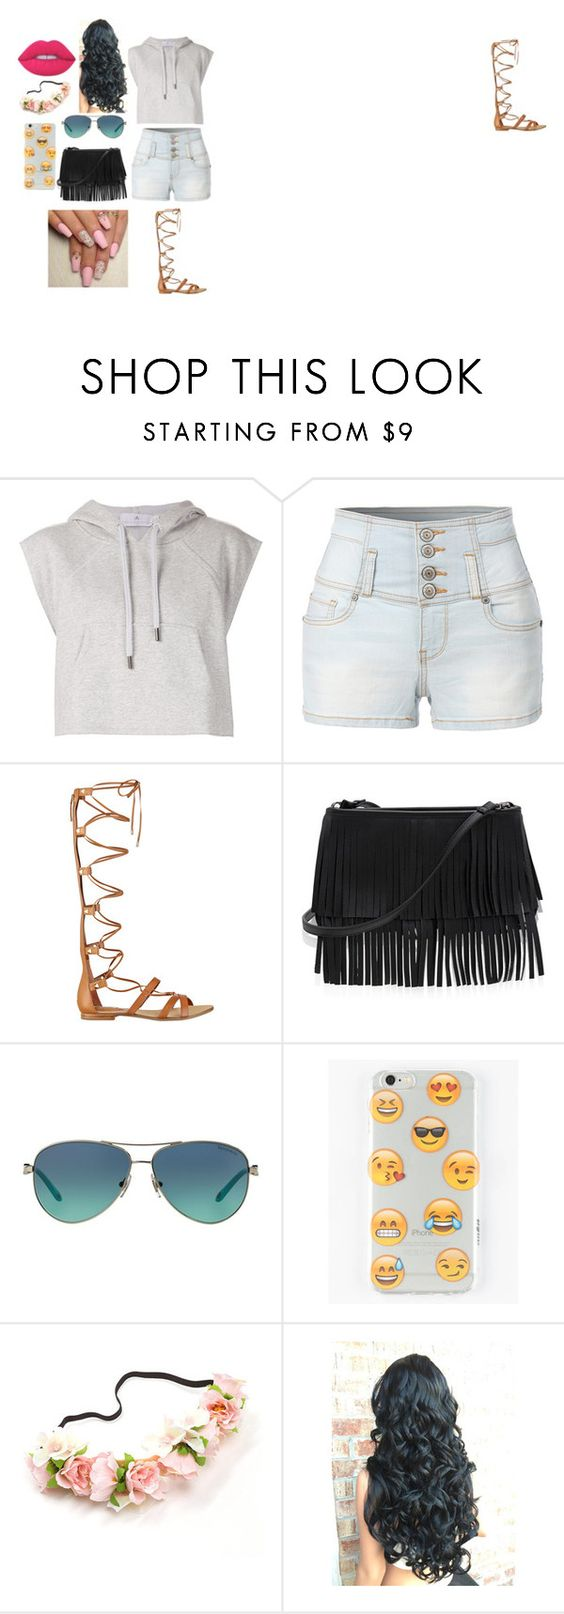 """""""Summer outfits"""" by frouse ❤ liked on Polyvore featuring adidas, LE3NO, GUESS, White House Black Market, Tiffany & Co., Ankit and Lime Crime"""